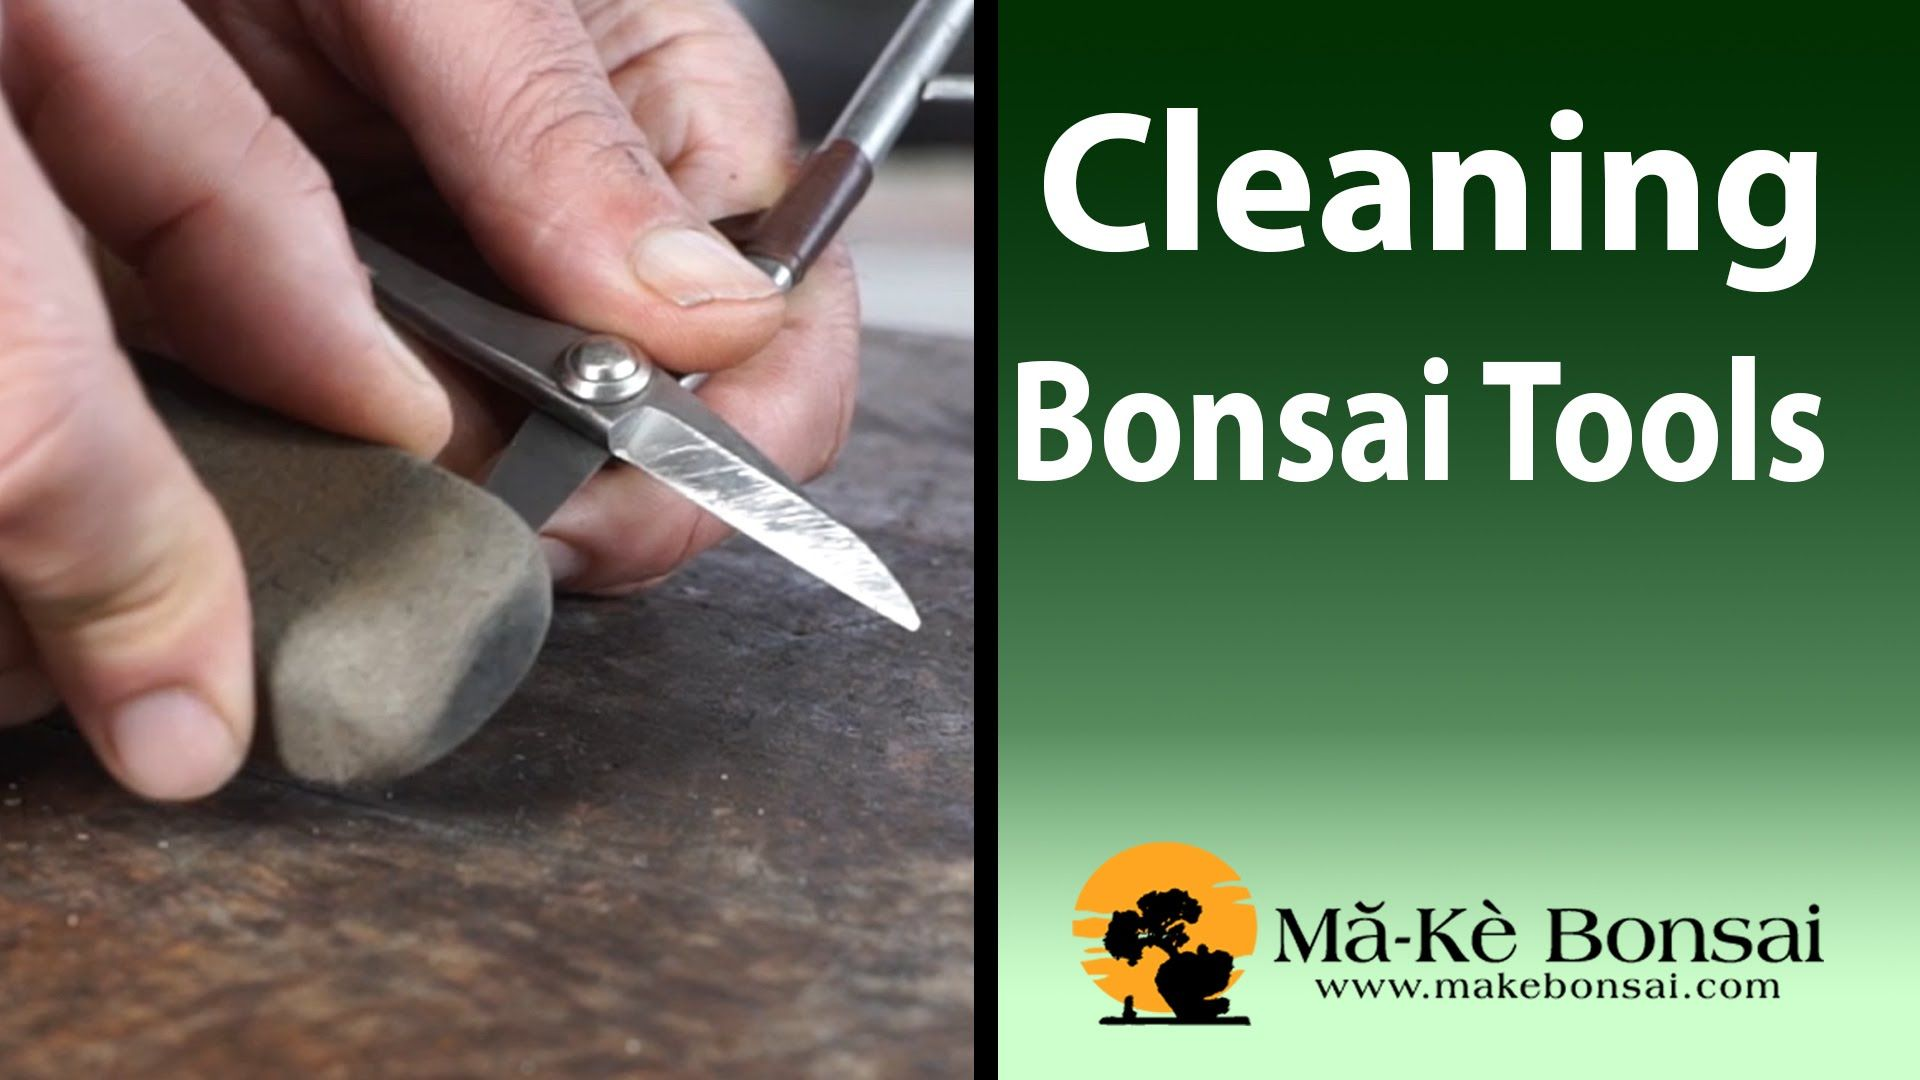 86 Basic Bonsai Tools Care Bonsai Trees For Beginners Series Bonsai Tools Bonsai Tree Bonsai